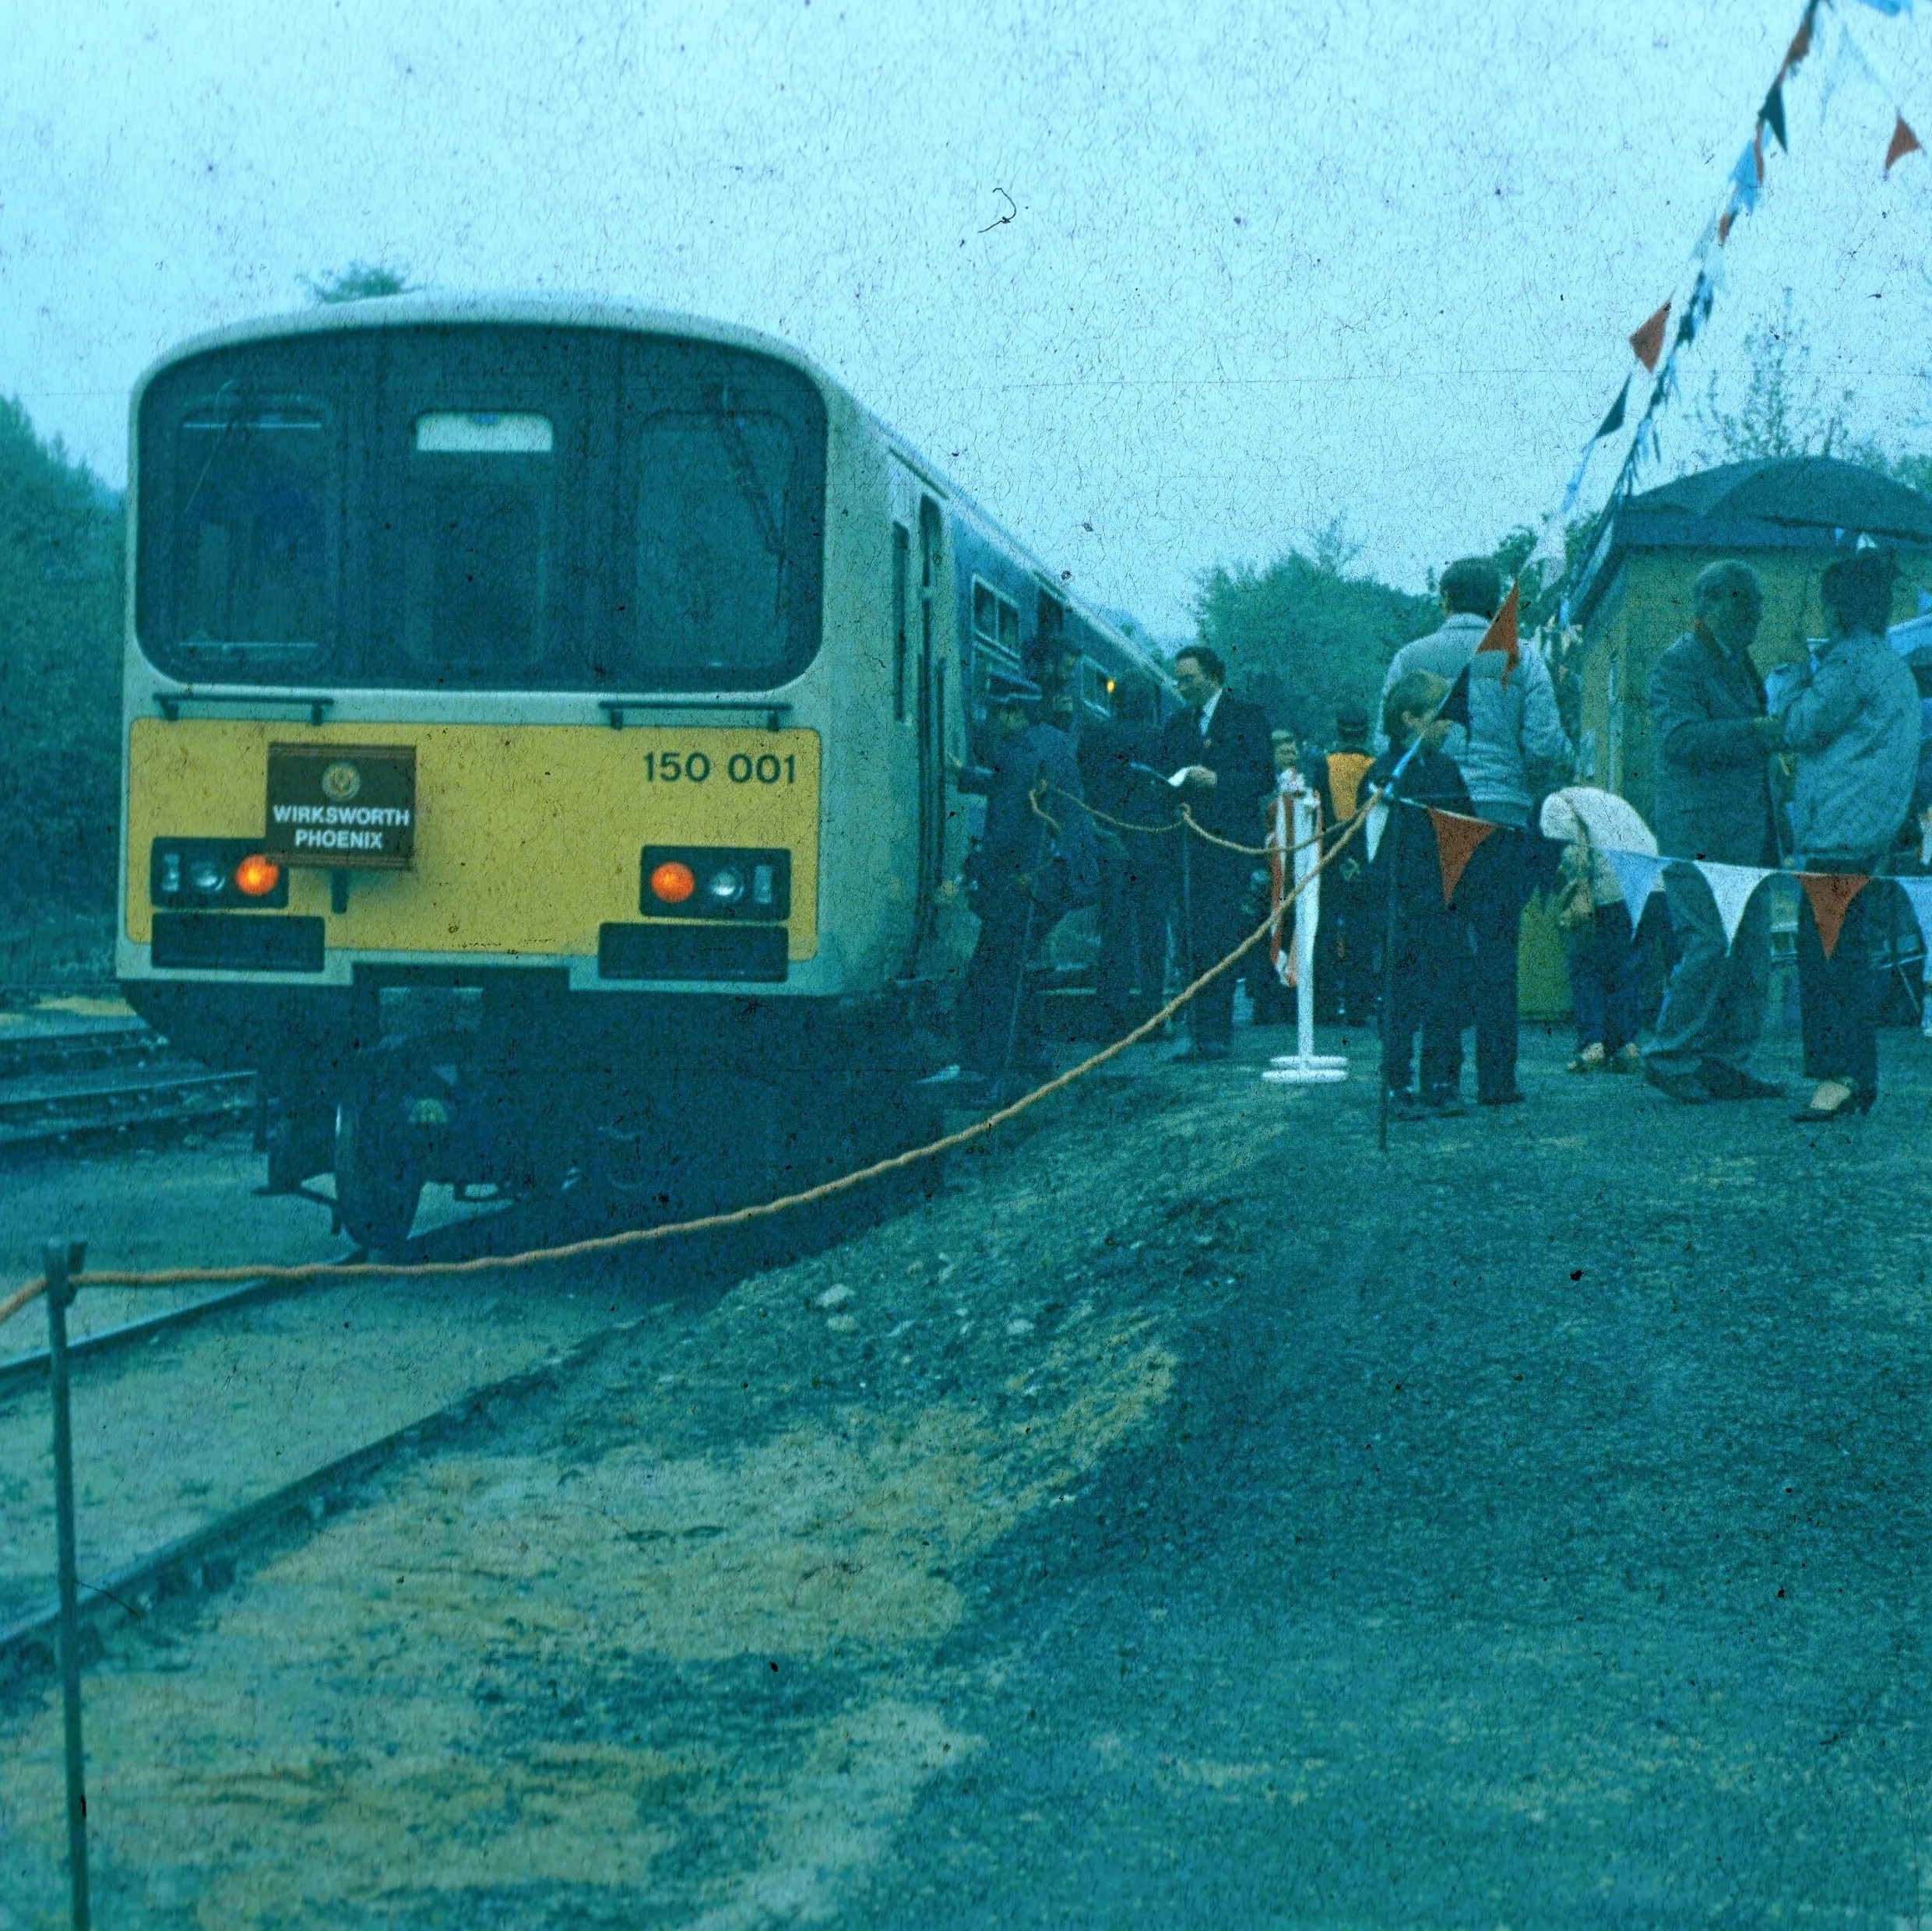 Class 150 prototype DMU 150001 on Wirksworth Phoenix